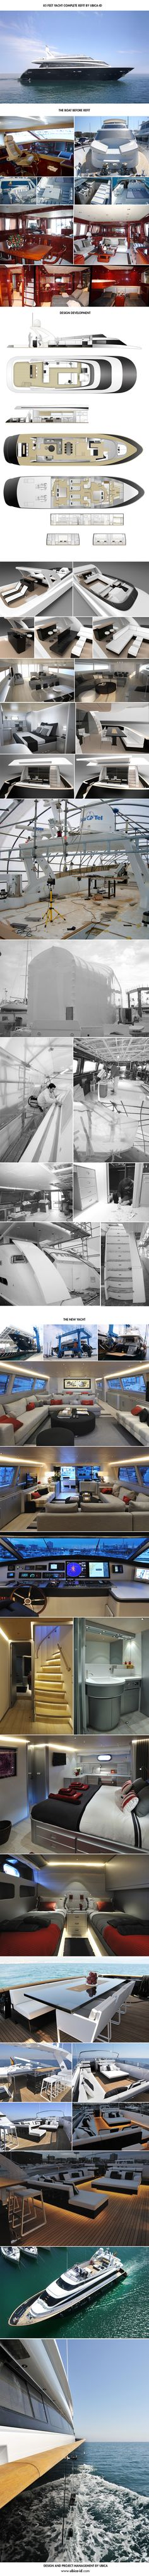 85 feet Yacht Refit #Yacht #Yachtdesign #YachtRefit #Inspiration. #OwnYourRefit